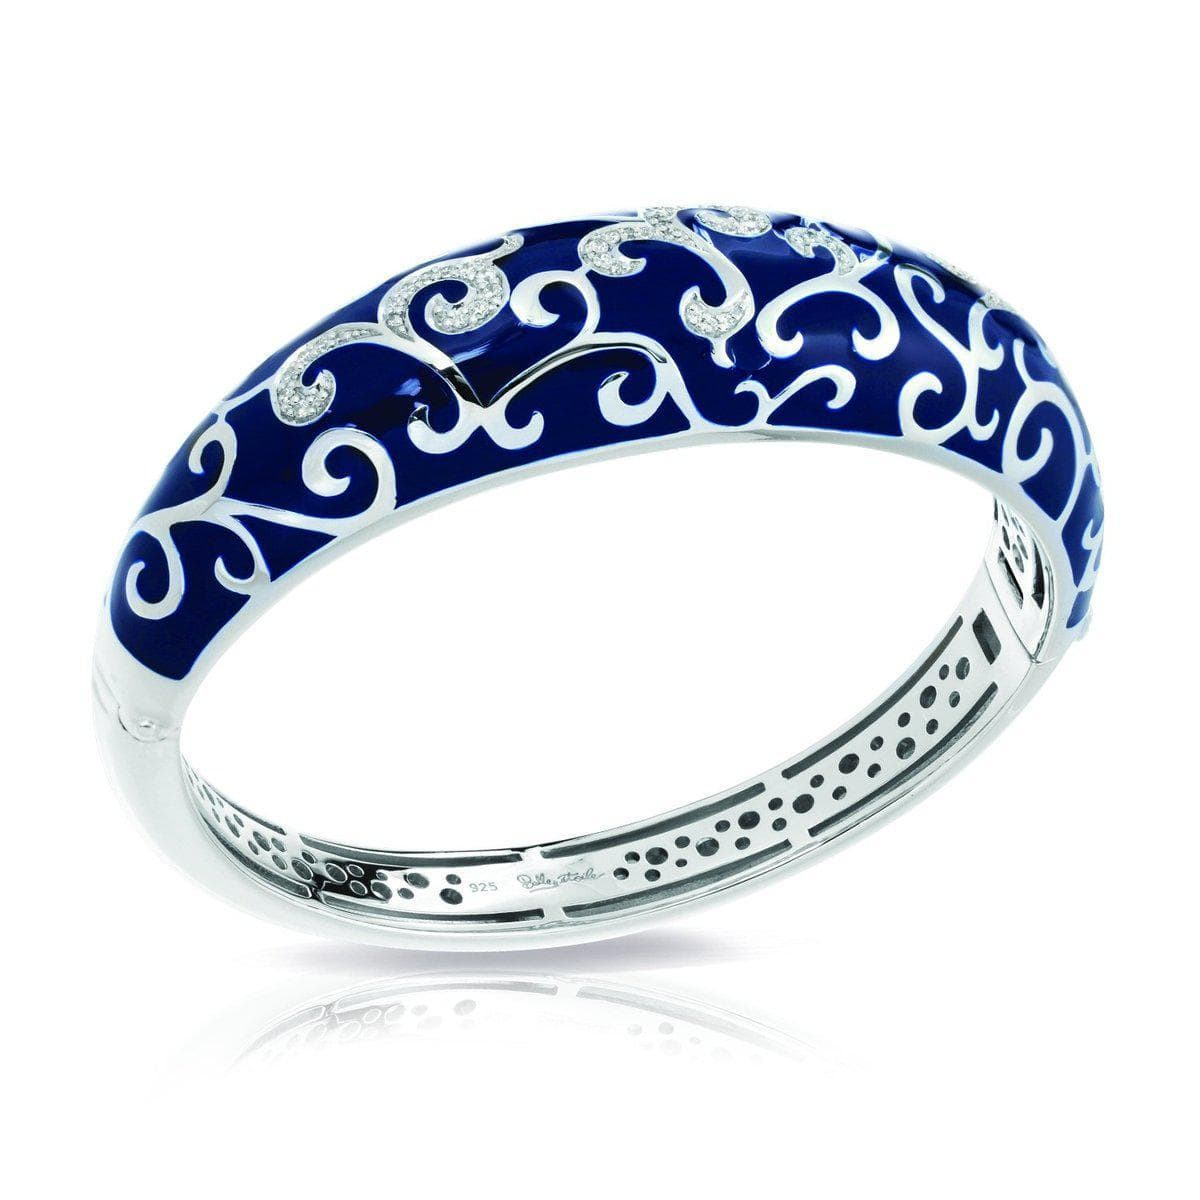 Royale Blue Bangle-Belle Etoile-Renee Taylor Gallery